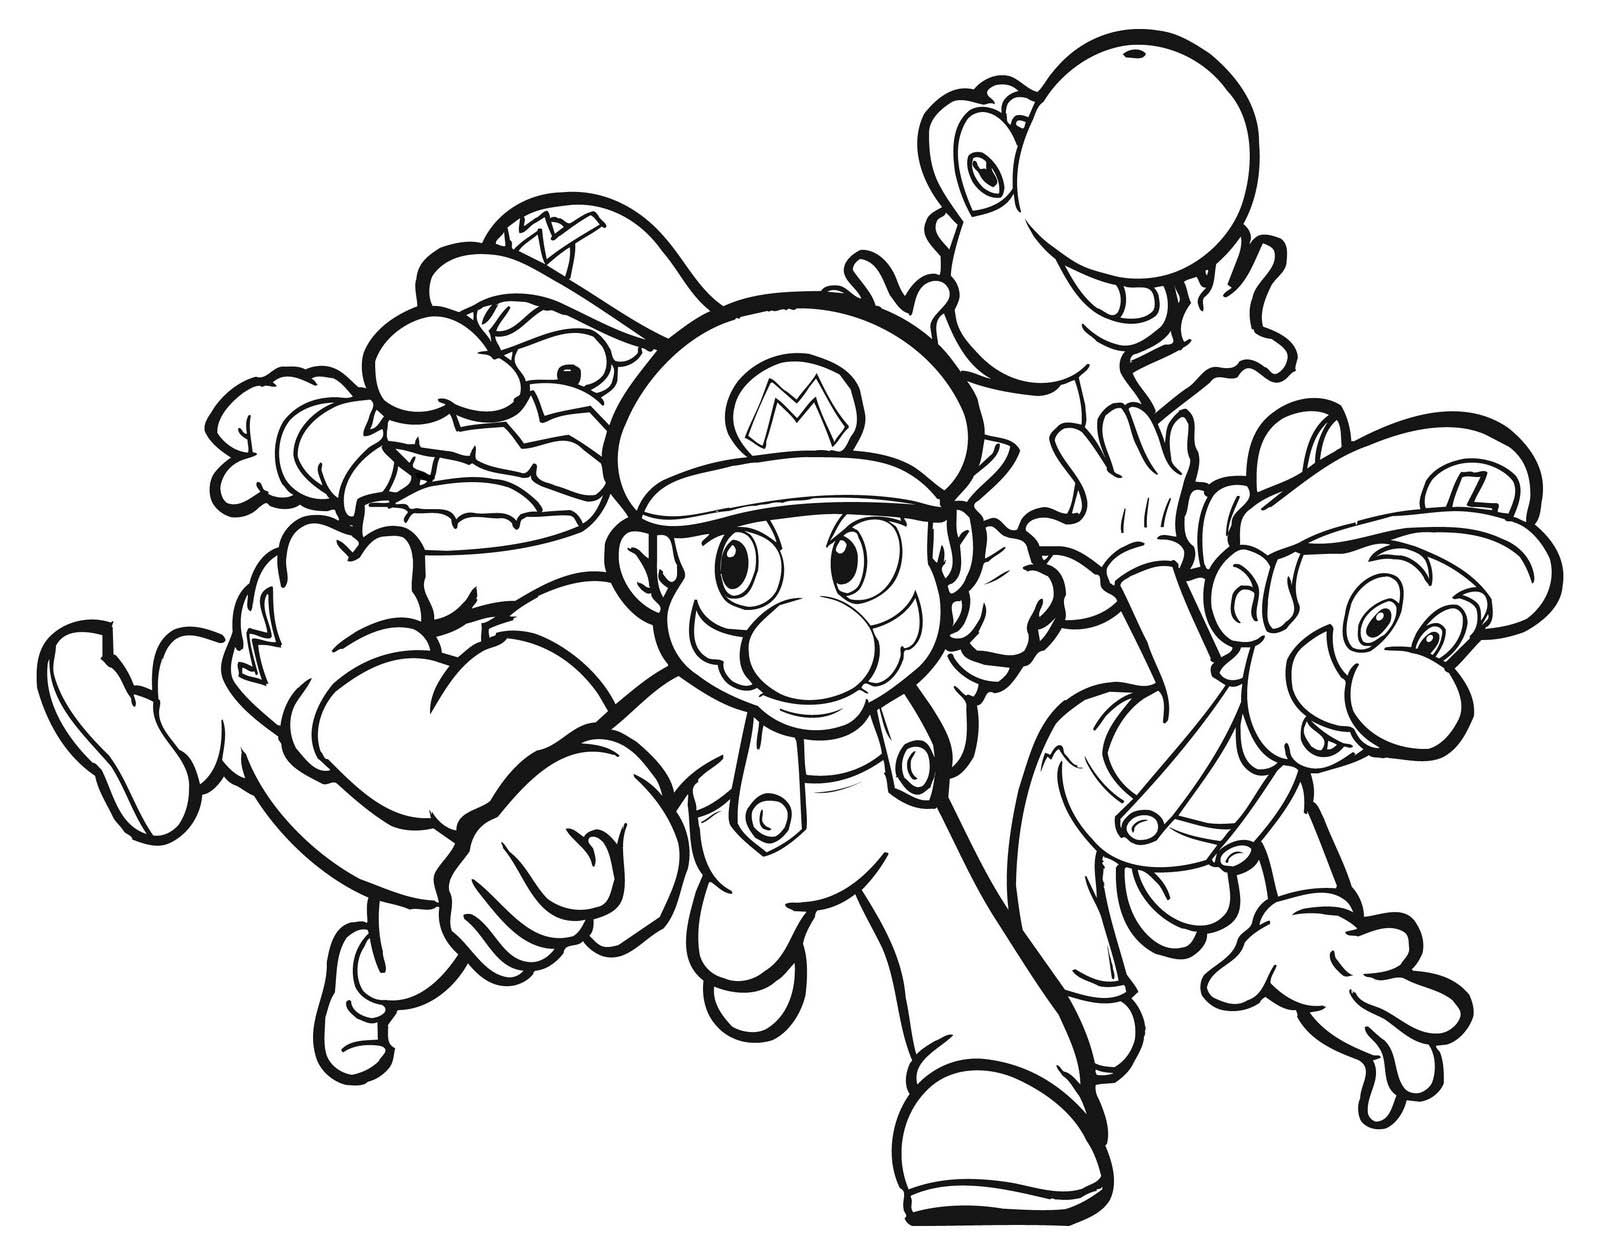 printable mario coloring pages,printable,coloring pages